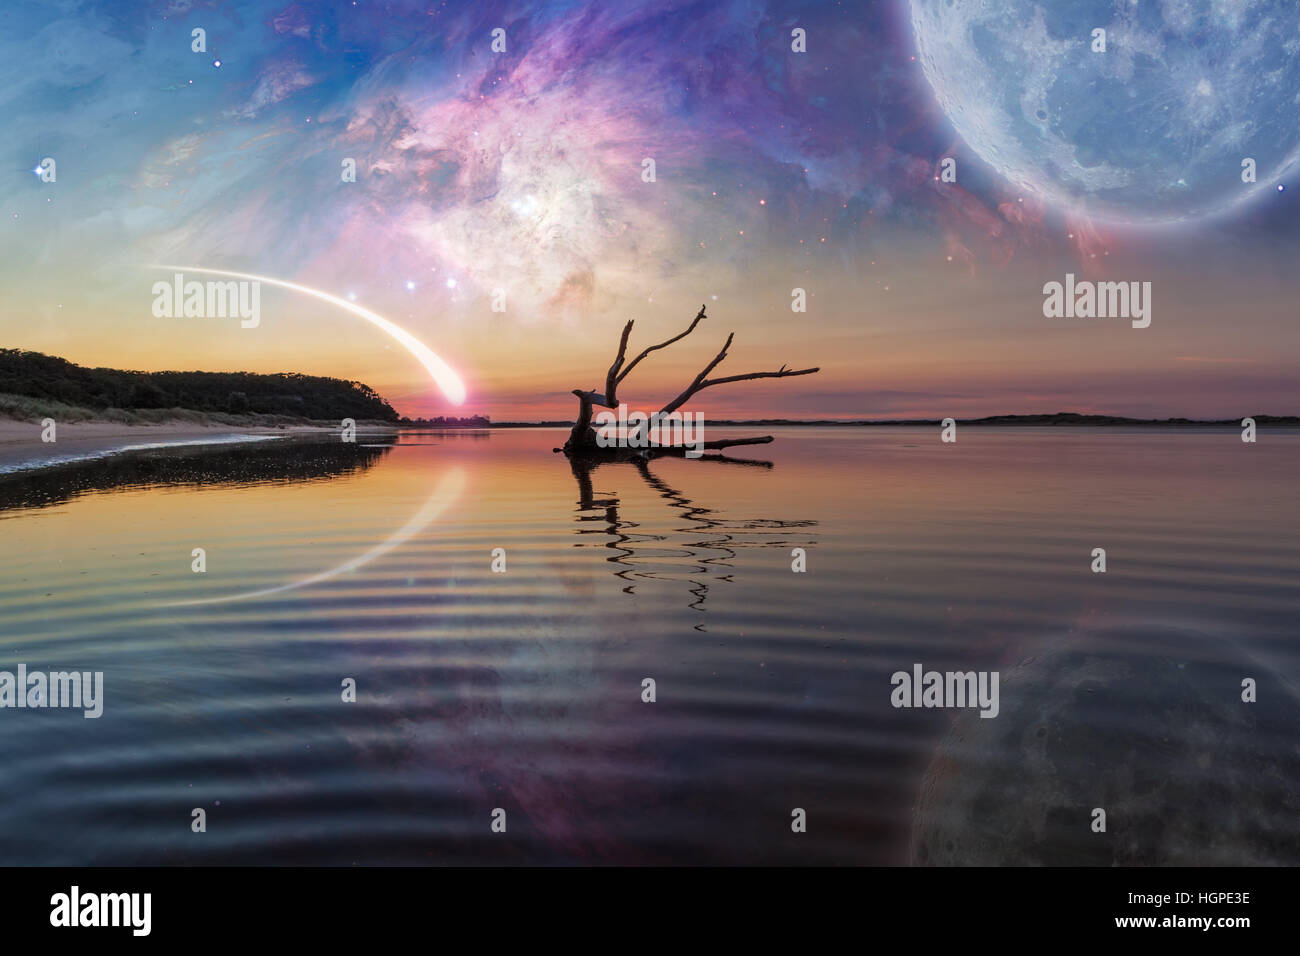 Fantasy landscape with driftwood reflecting in the water, huge planet in the sky, galaxy and comet. Elements of - Stock Image